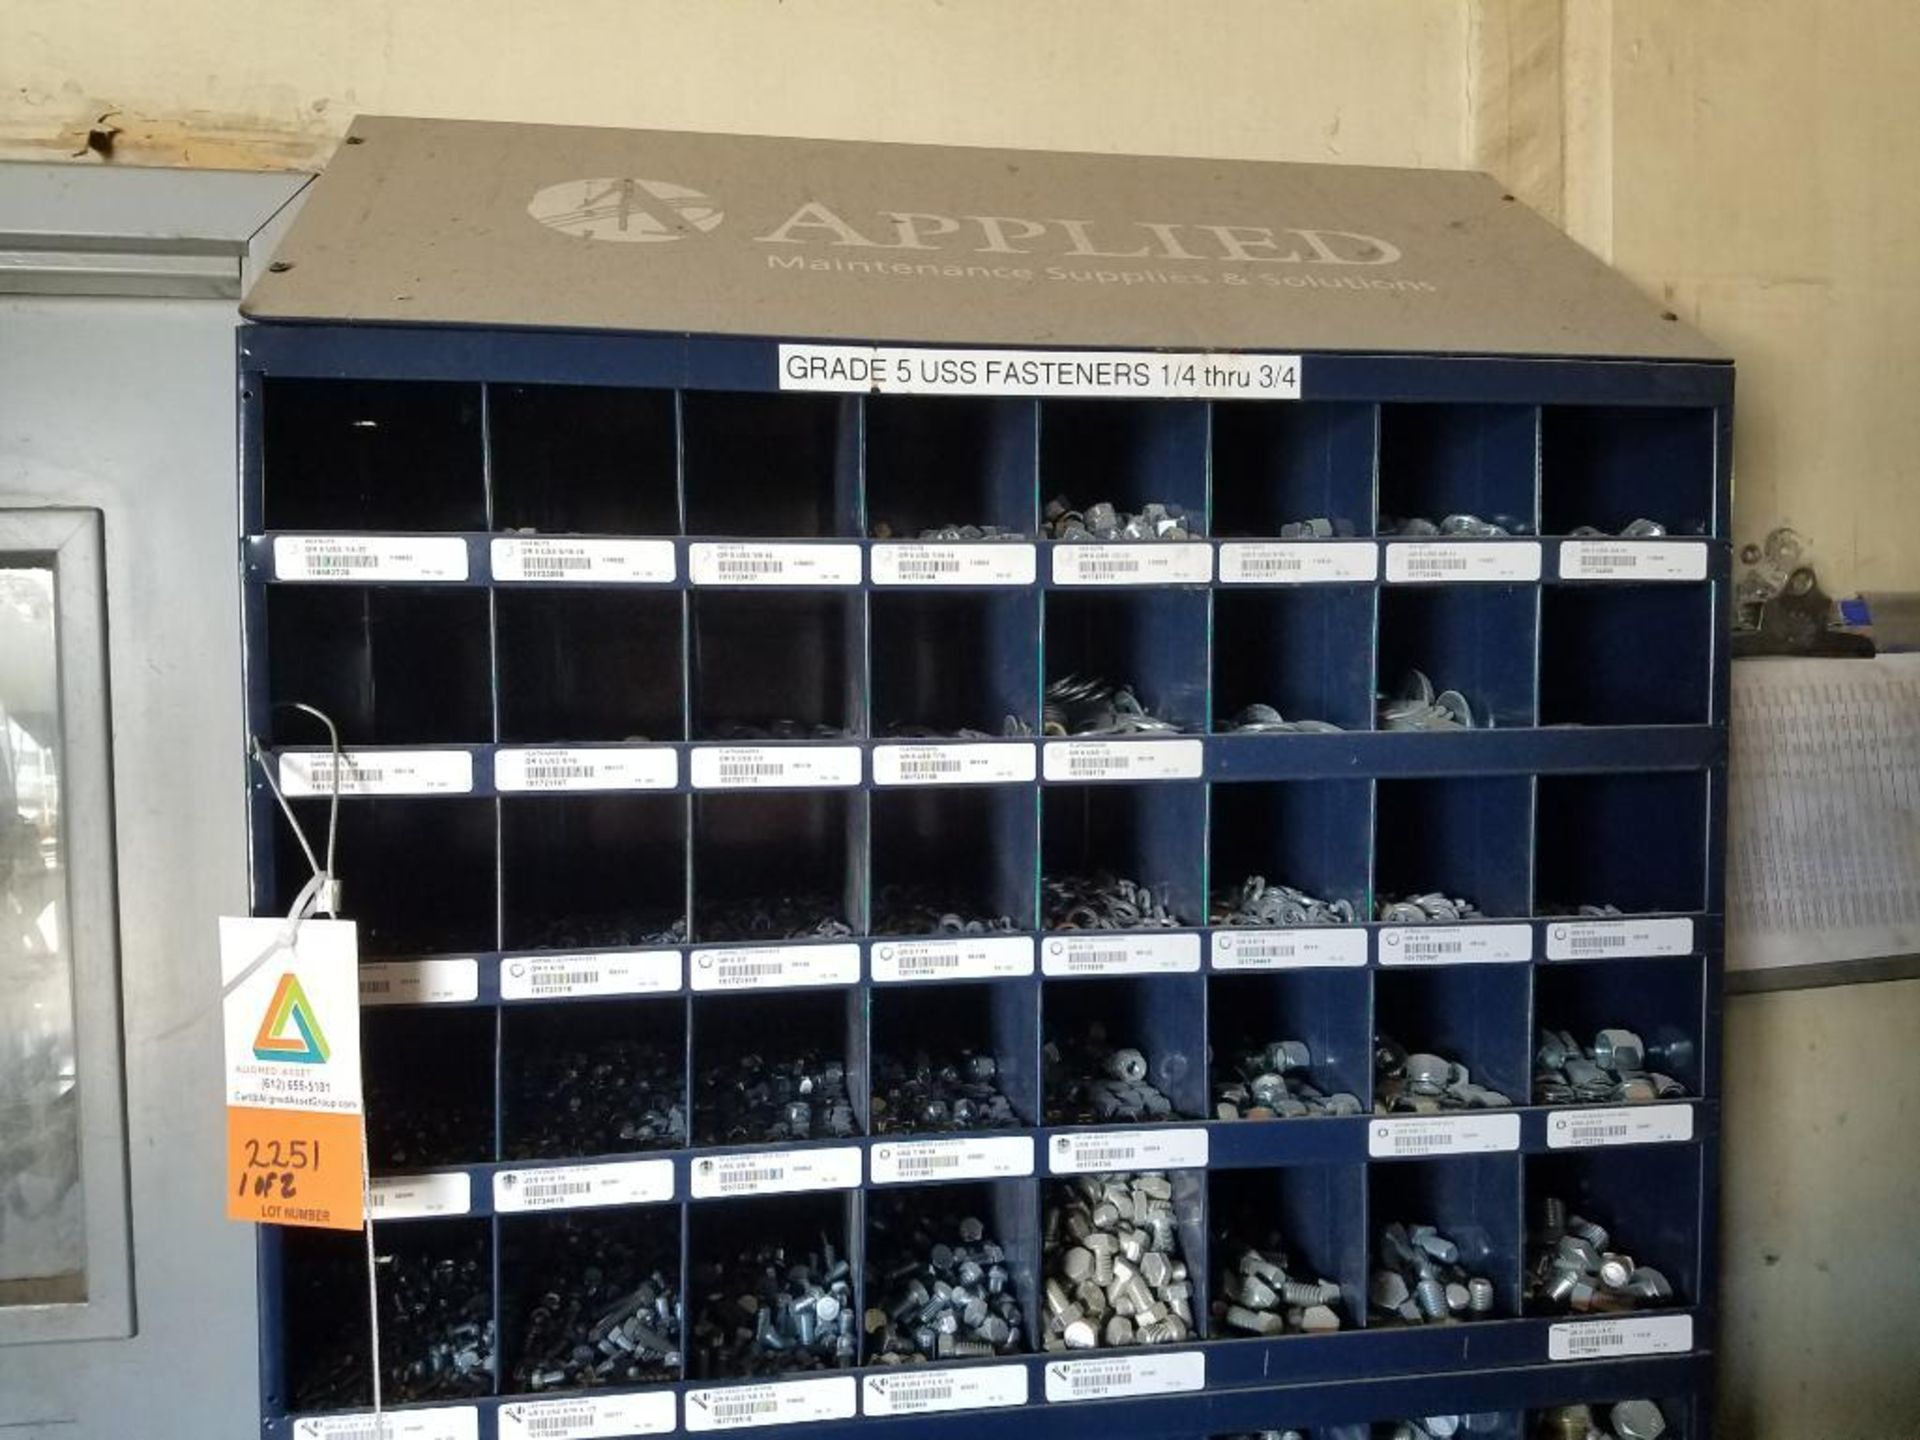 grade 5 nut and bolt bins - Image 2 of 4